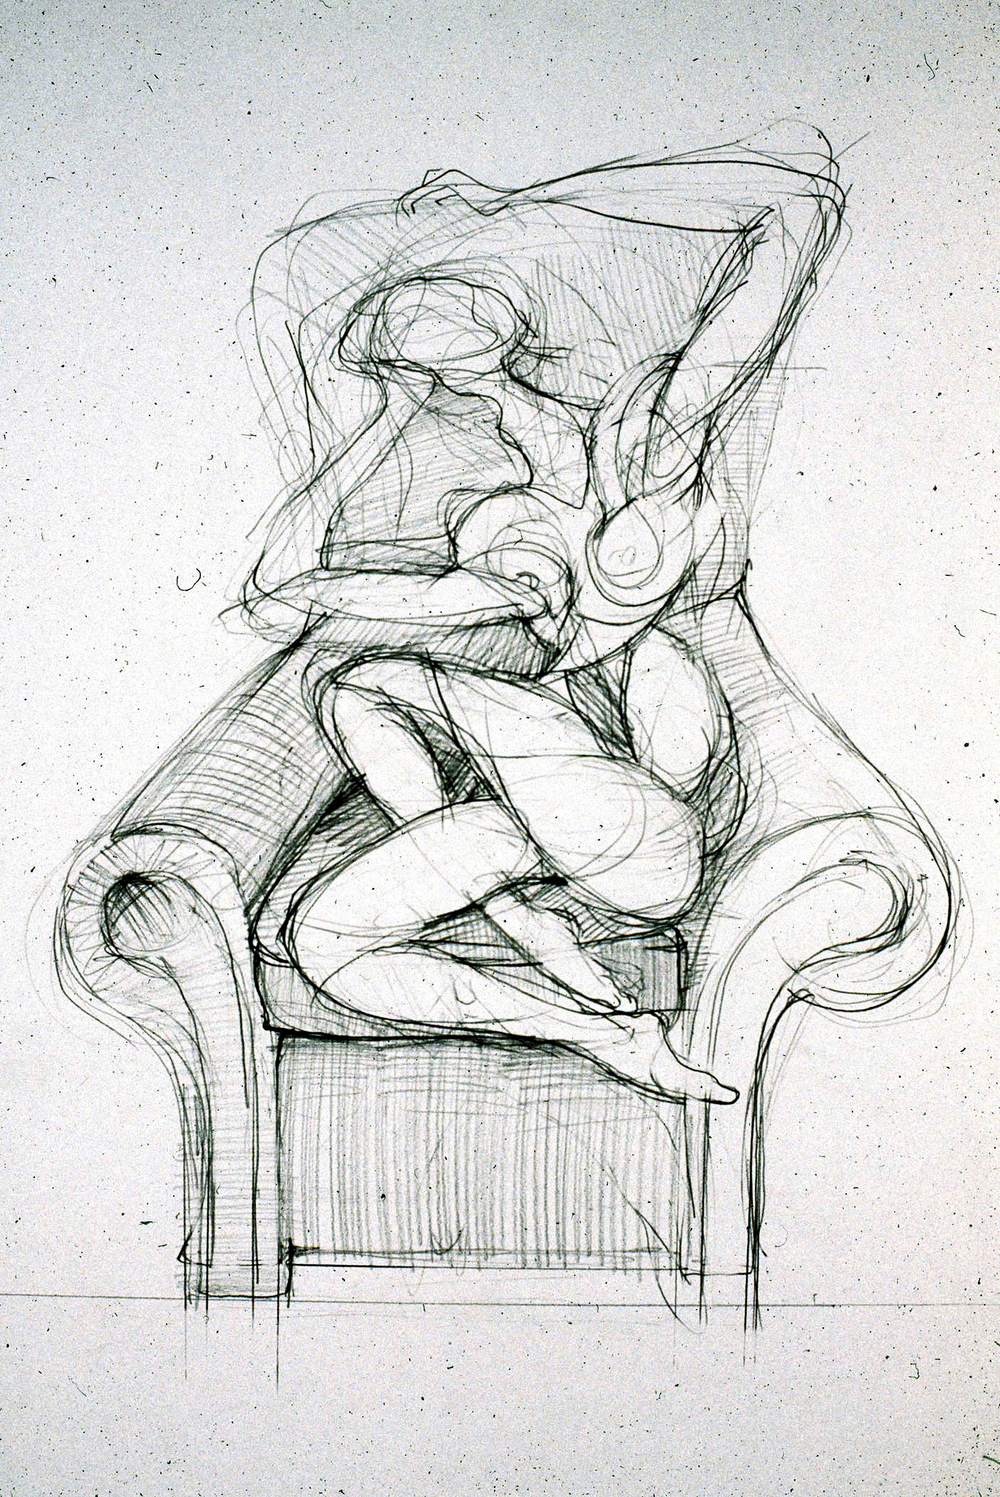 2006  Graphite on paper  24x18 in.